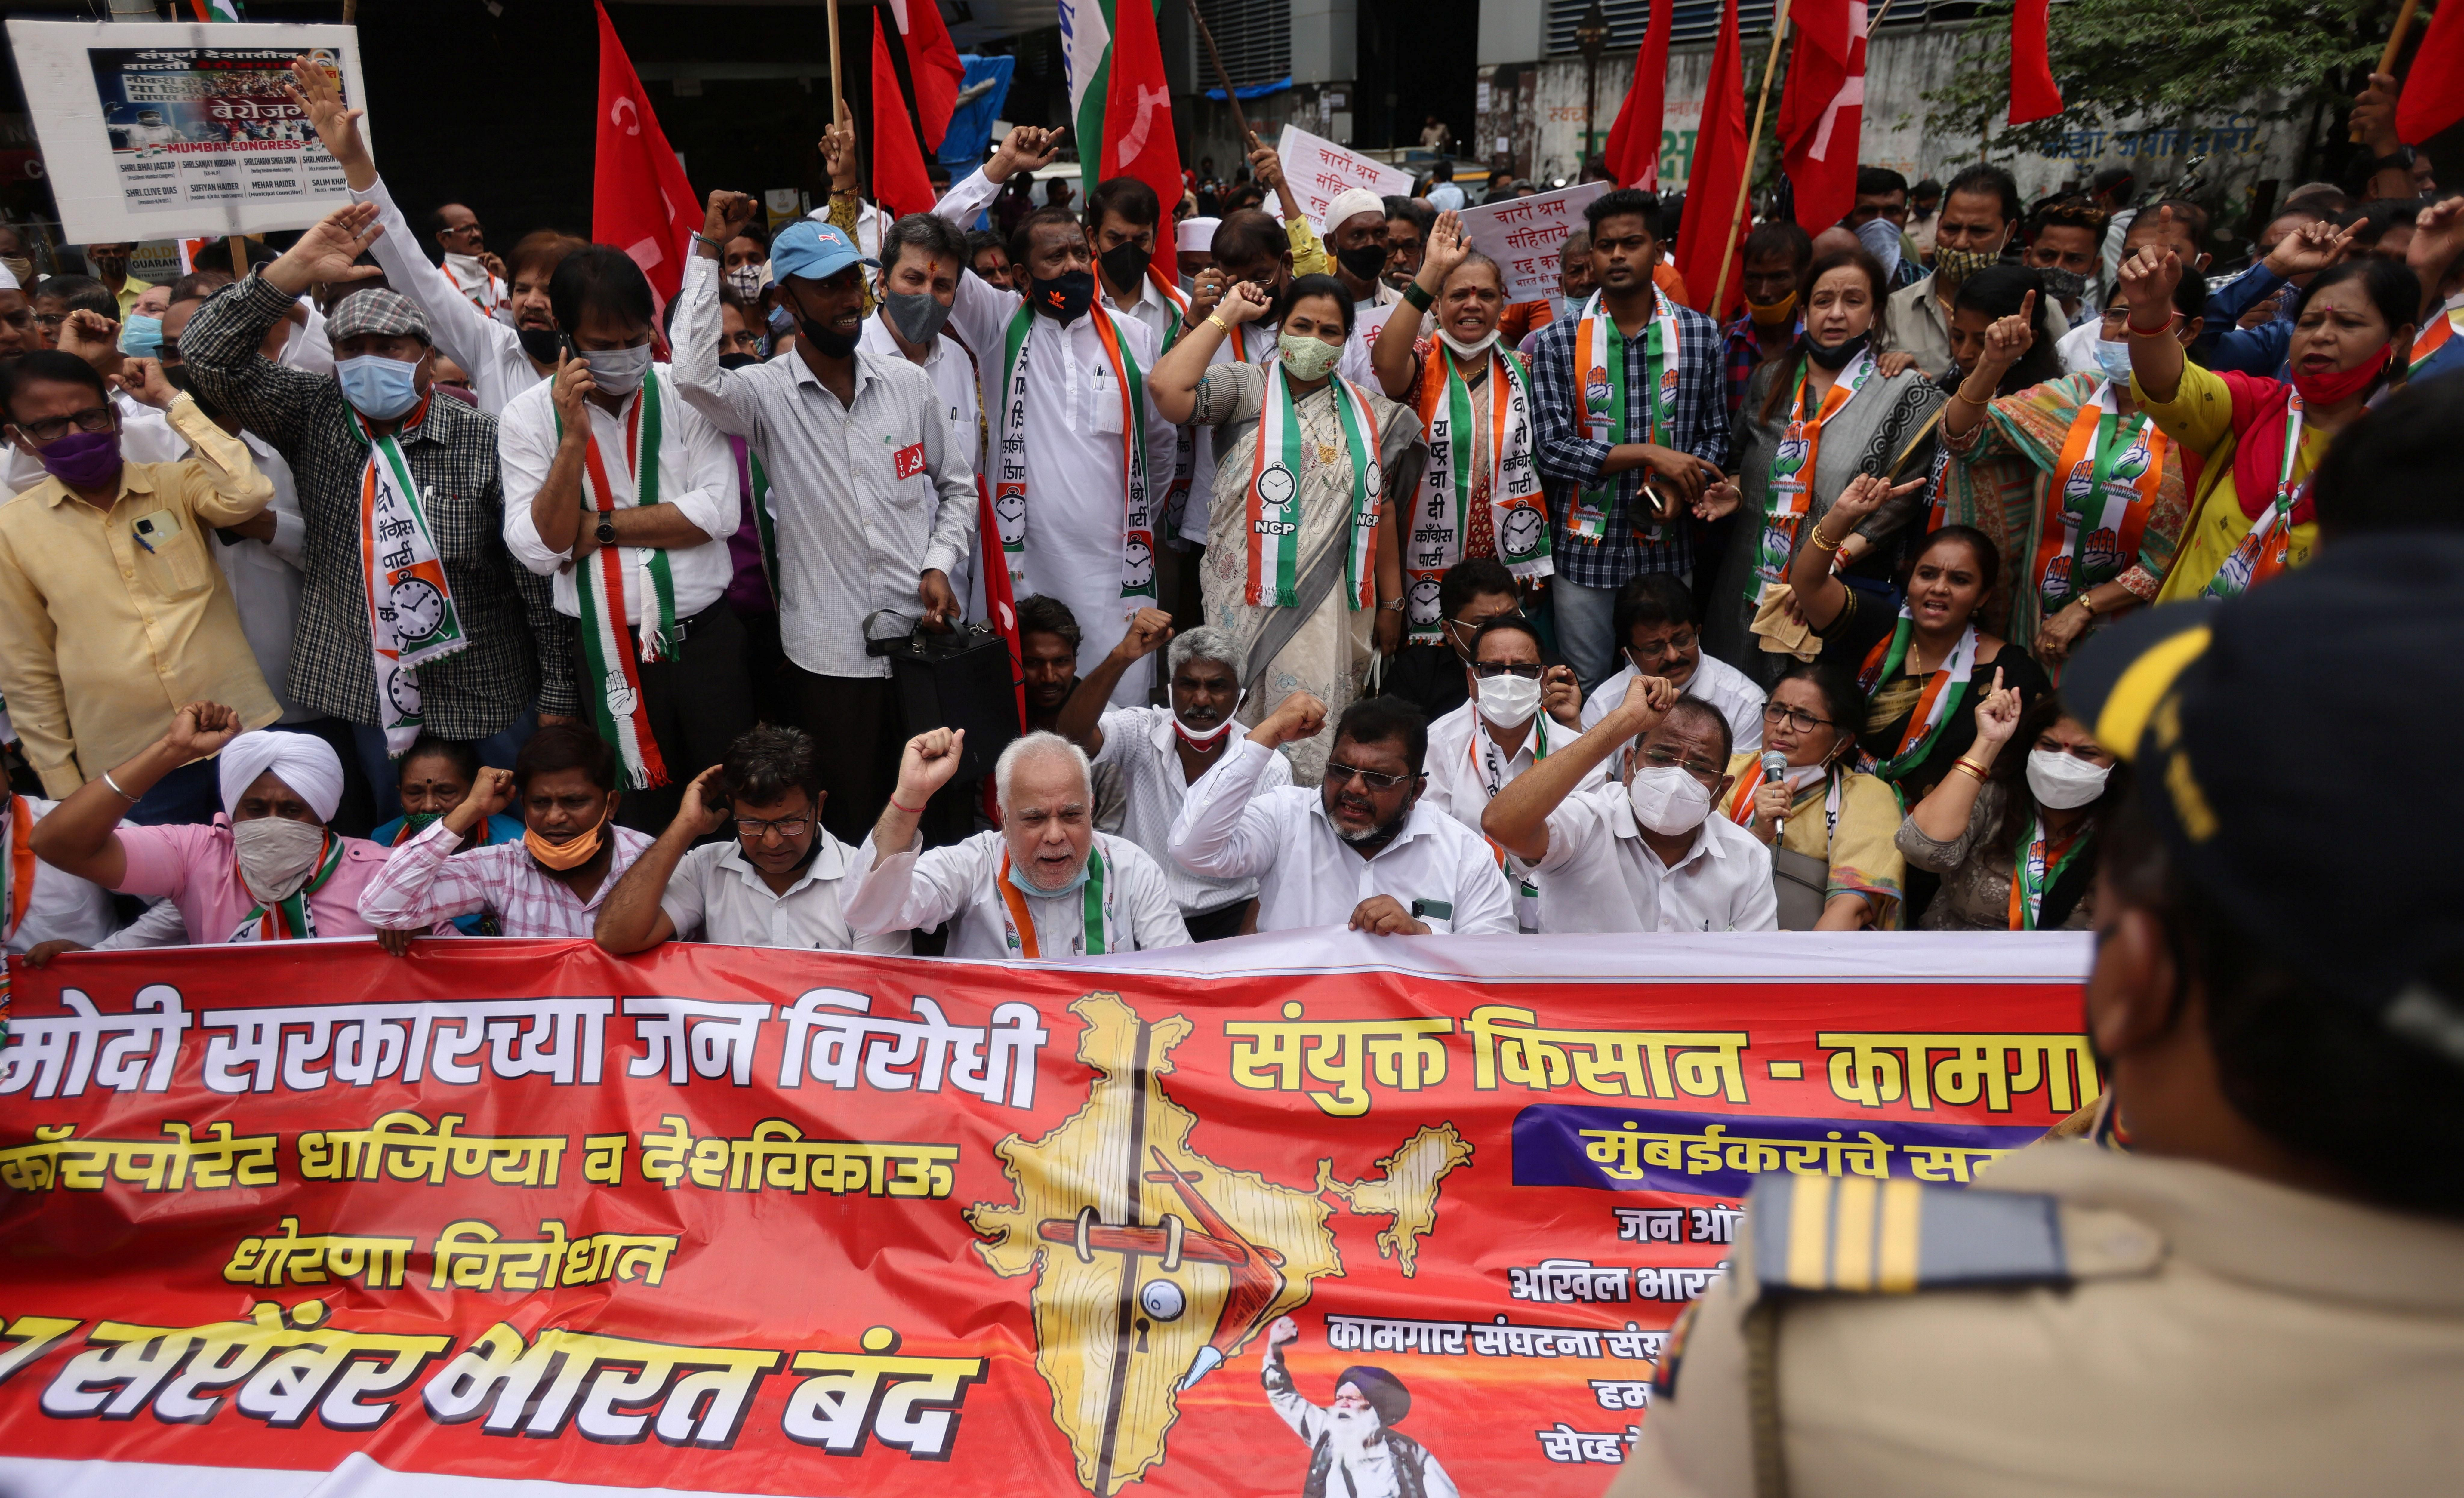 Members of the Communist Party of India (CPI) protest against farm laws during a nationwide strike, in Mumbai, India, September 27, 2021